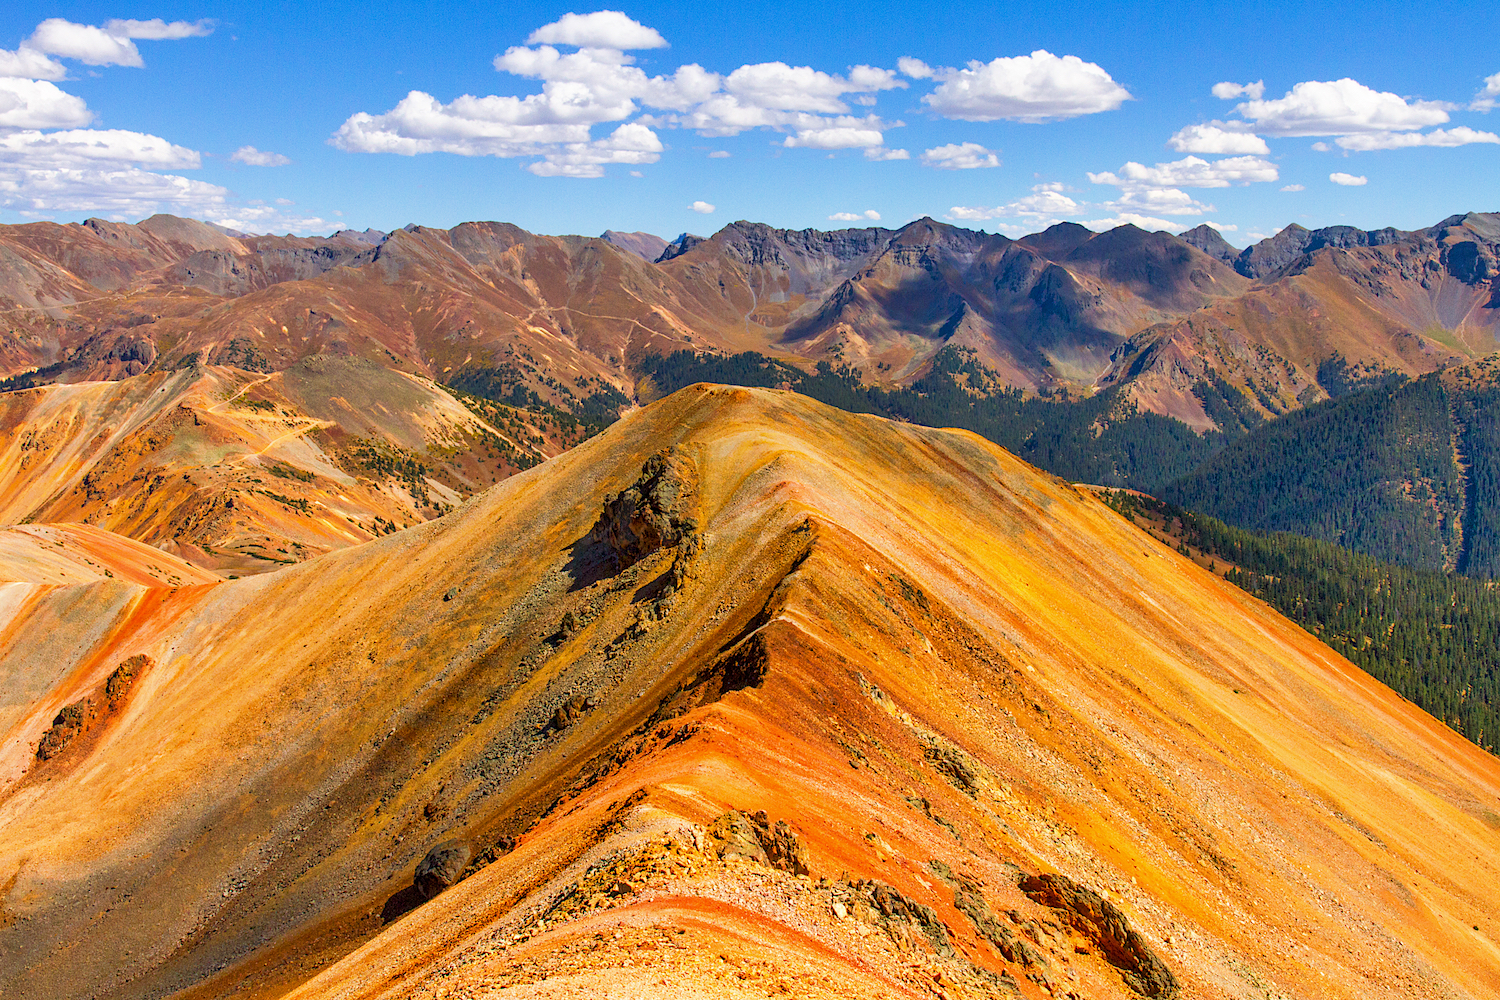 Red Mountain #3, Image # 6187